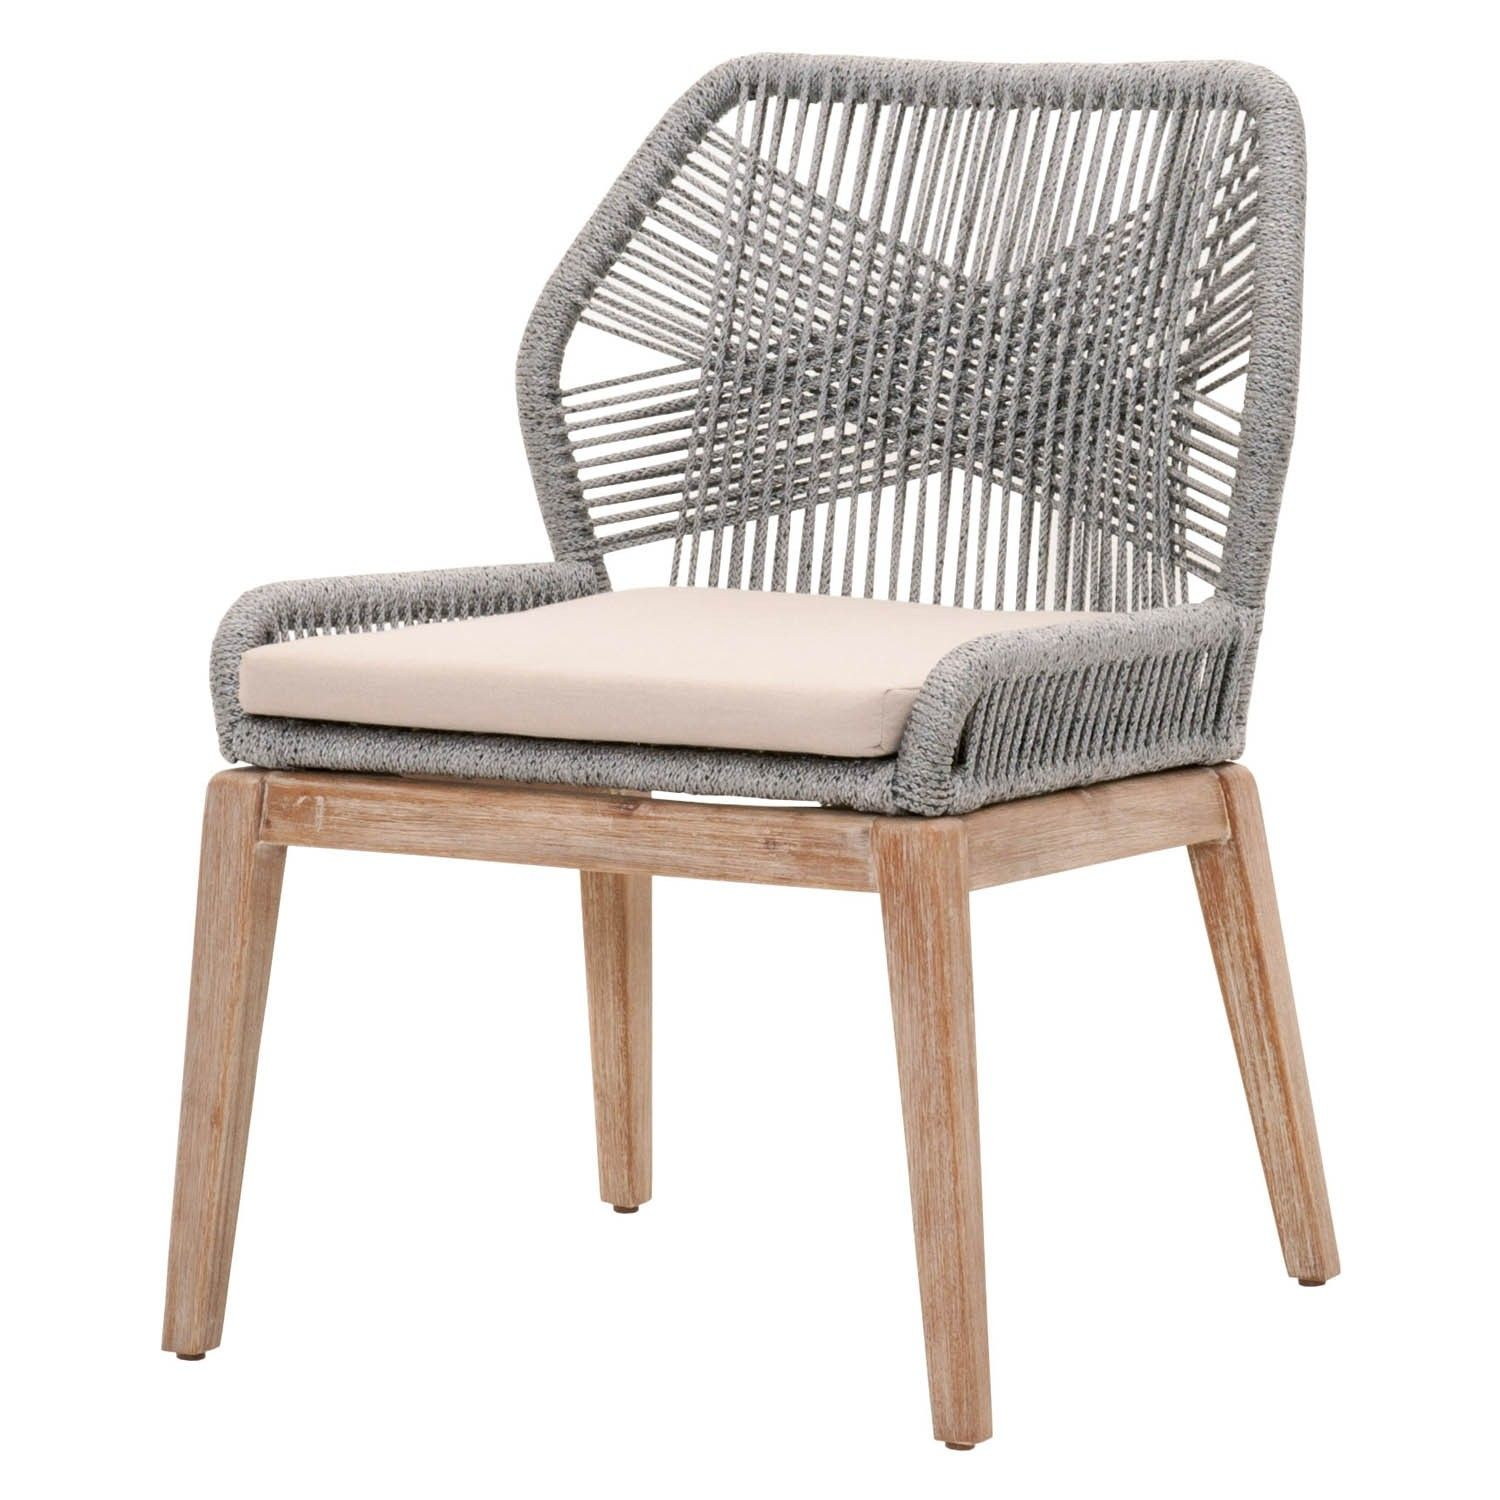 271ad235cd12 Weave Platinum Rope Dining Chair (Set of 2) | Outside | Dining ...